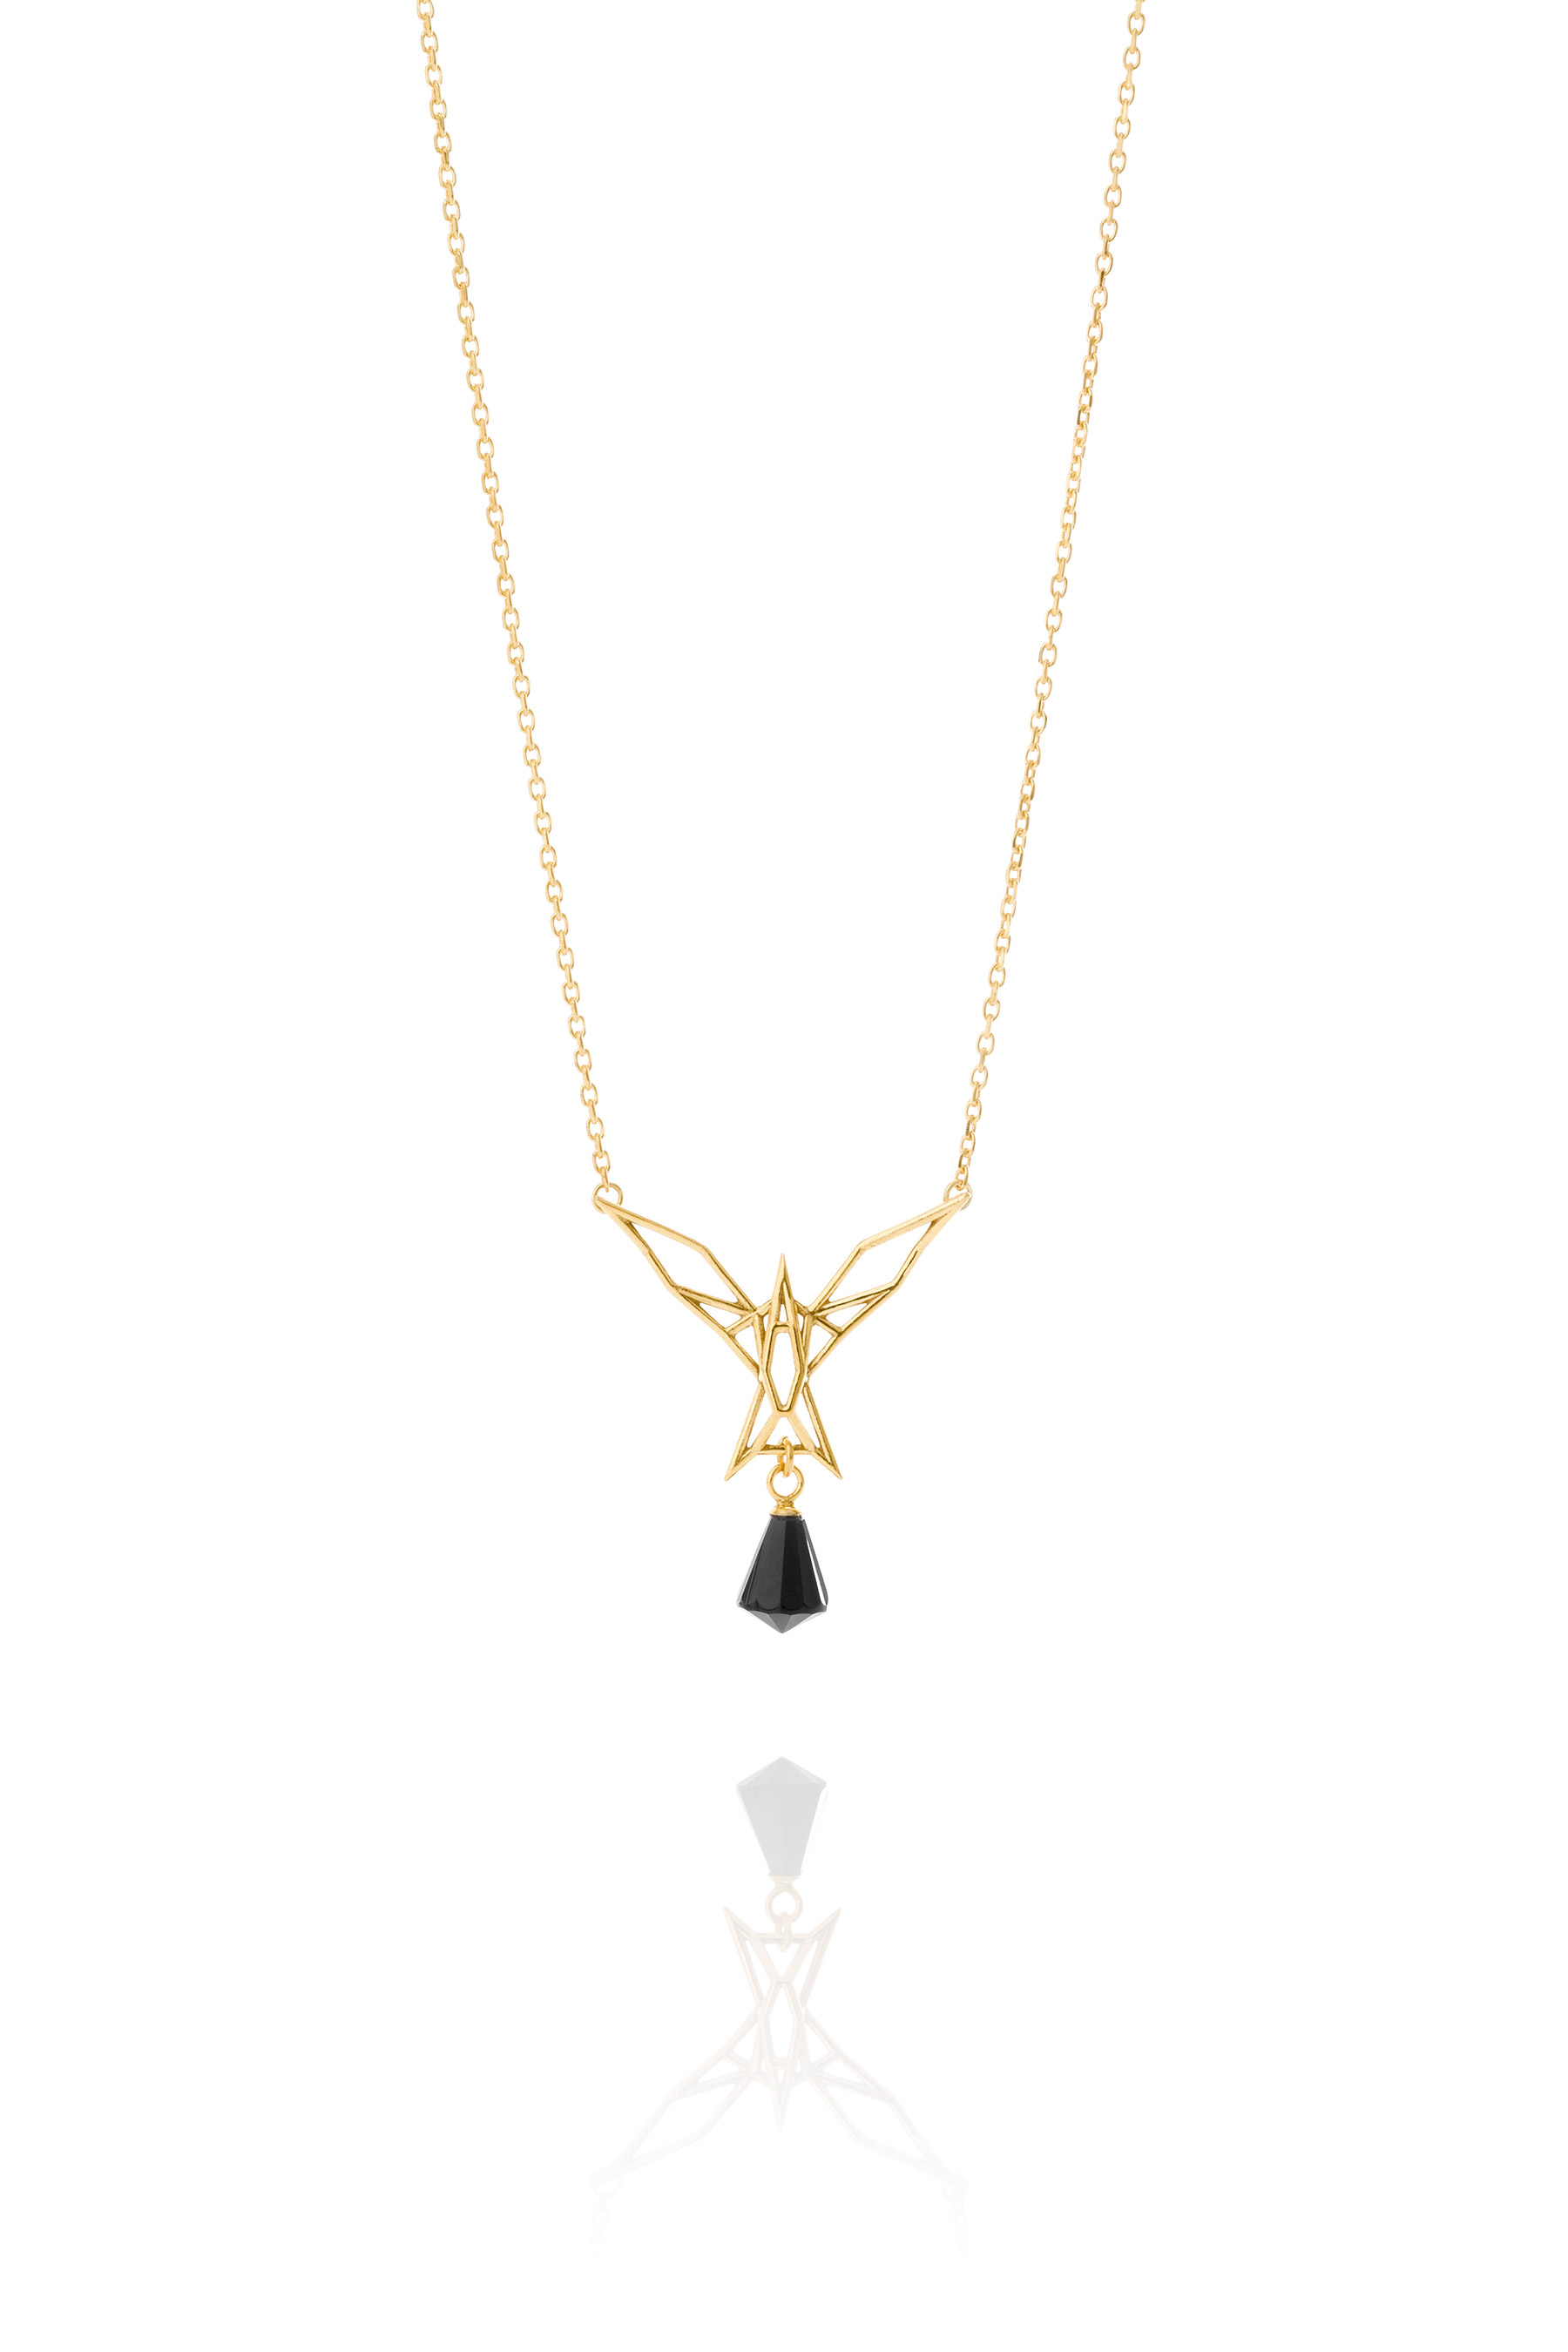 diamond pendant onyx gold expertissim and chain white